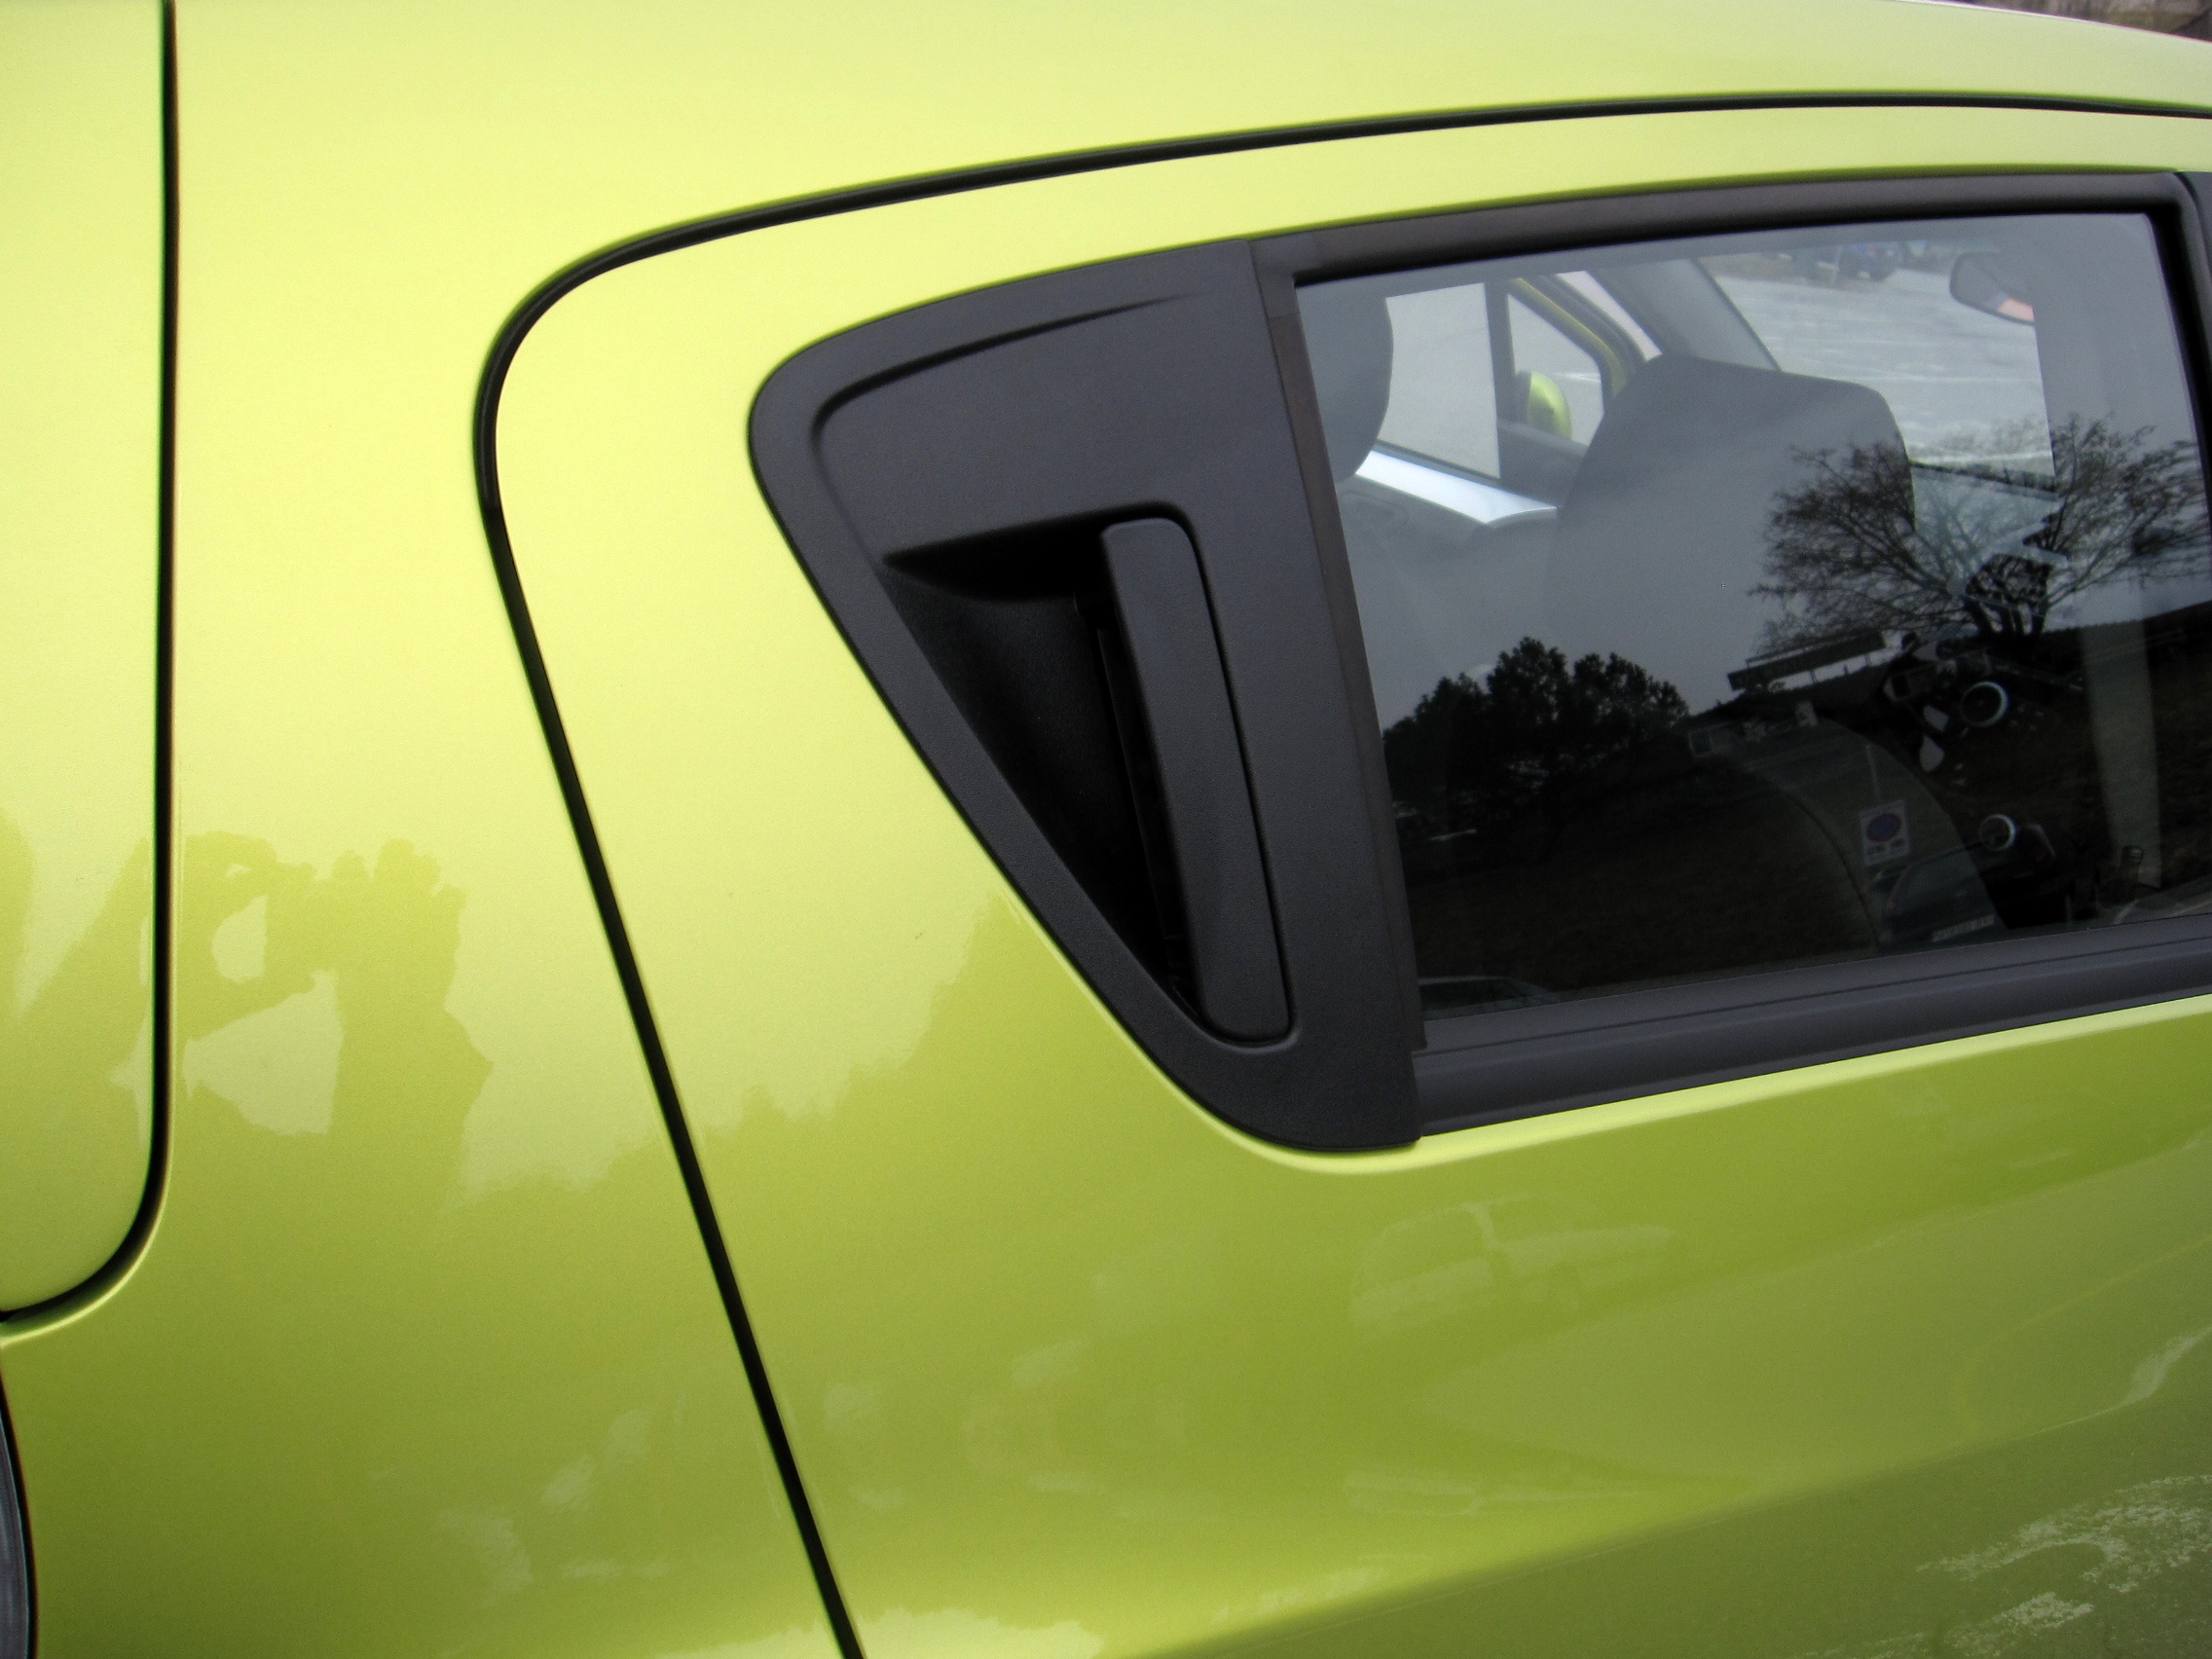 Chevy Spark door handles